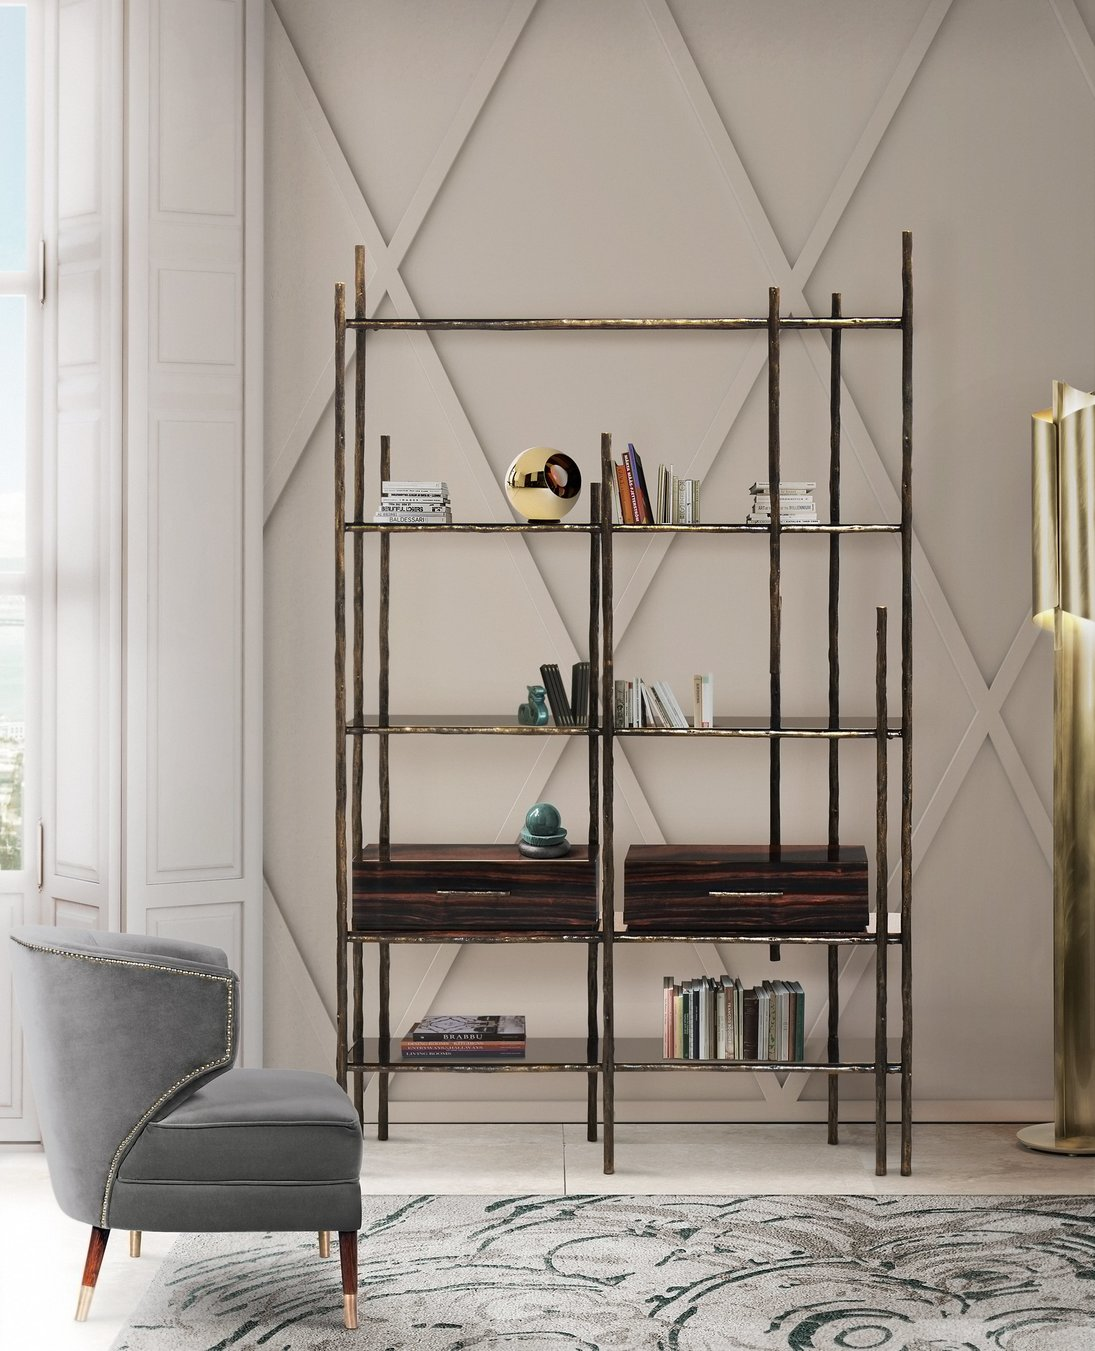 What to expect from the BRABBU in IMM Cologne 2019 ? imm cologne 2019What to expect from the BRABBU in IMM Cologne 2019 ?rsz 129 mambu bookcase ibis armchair min